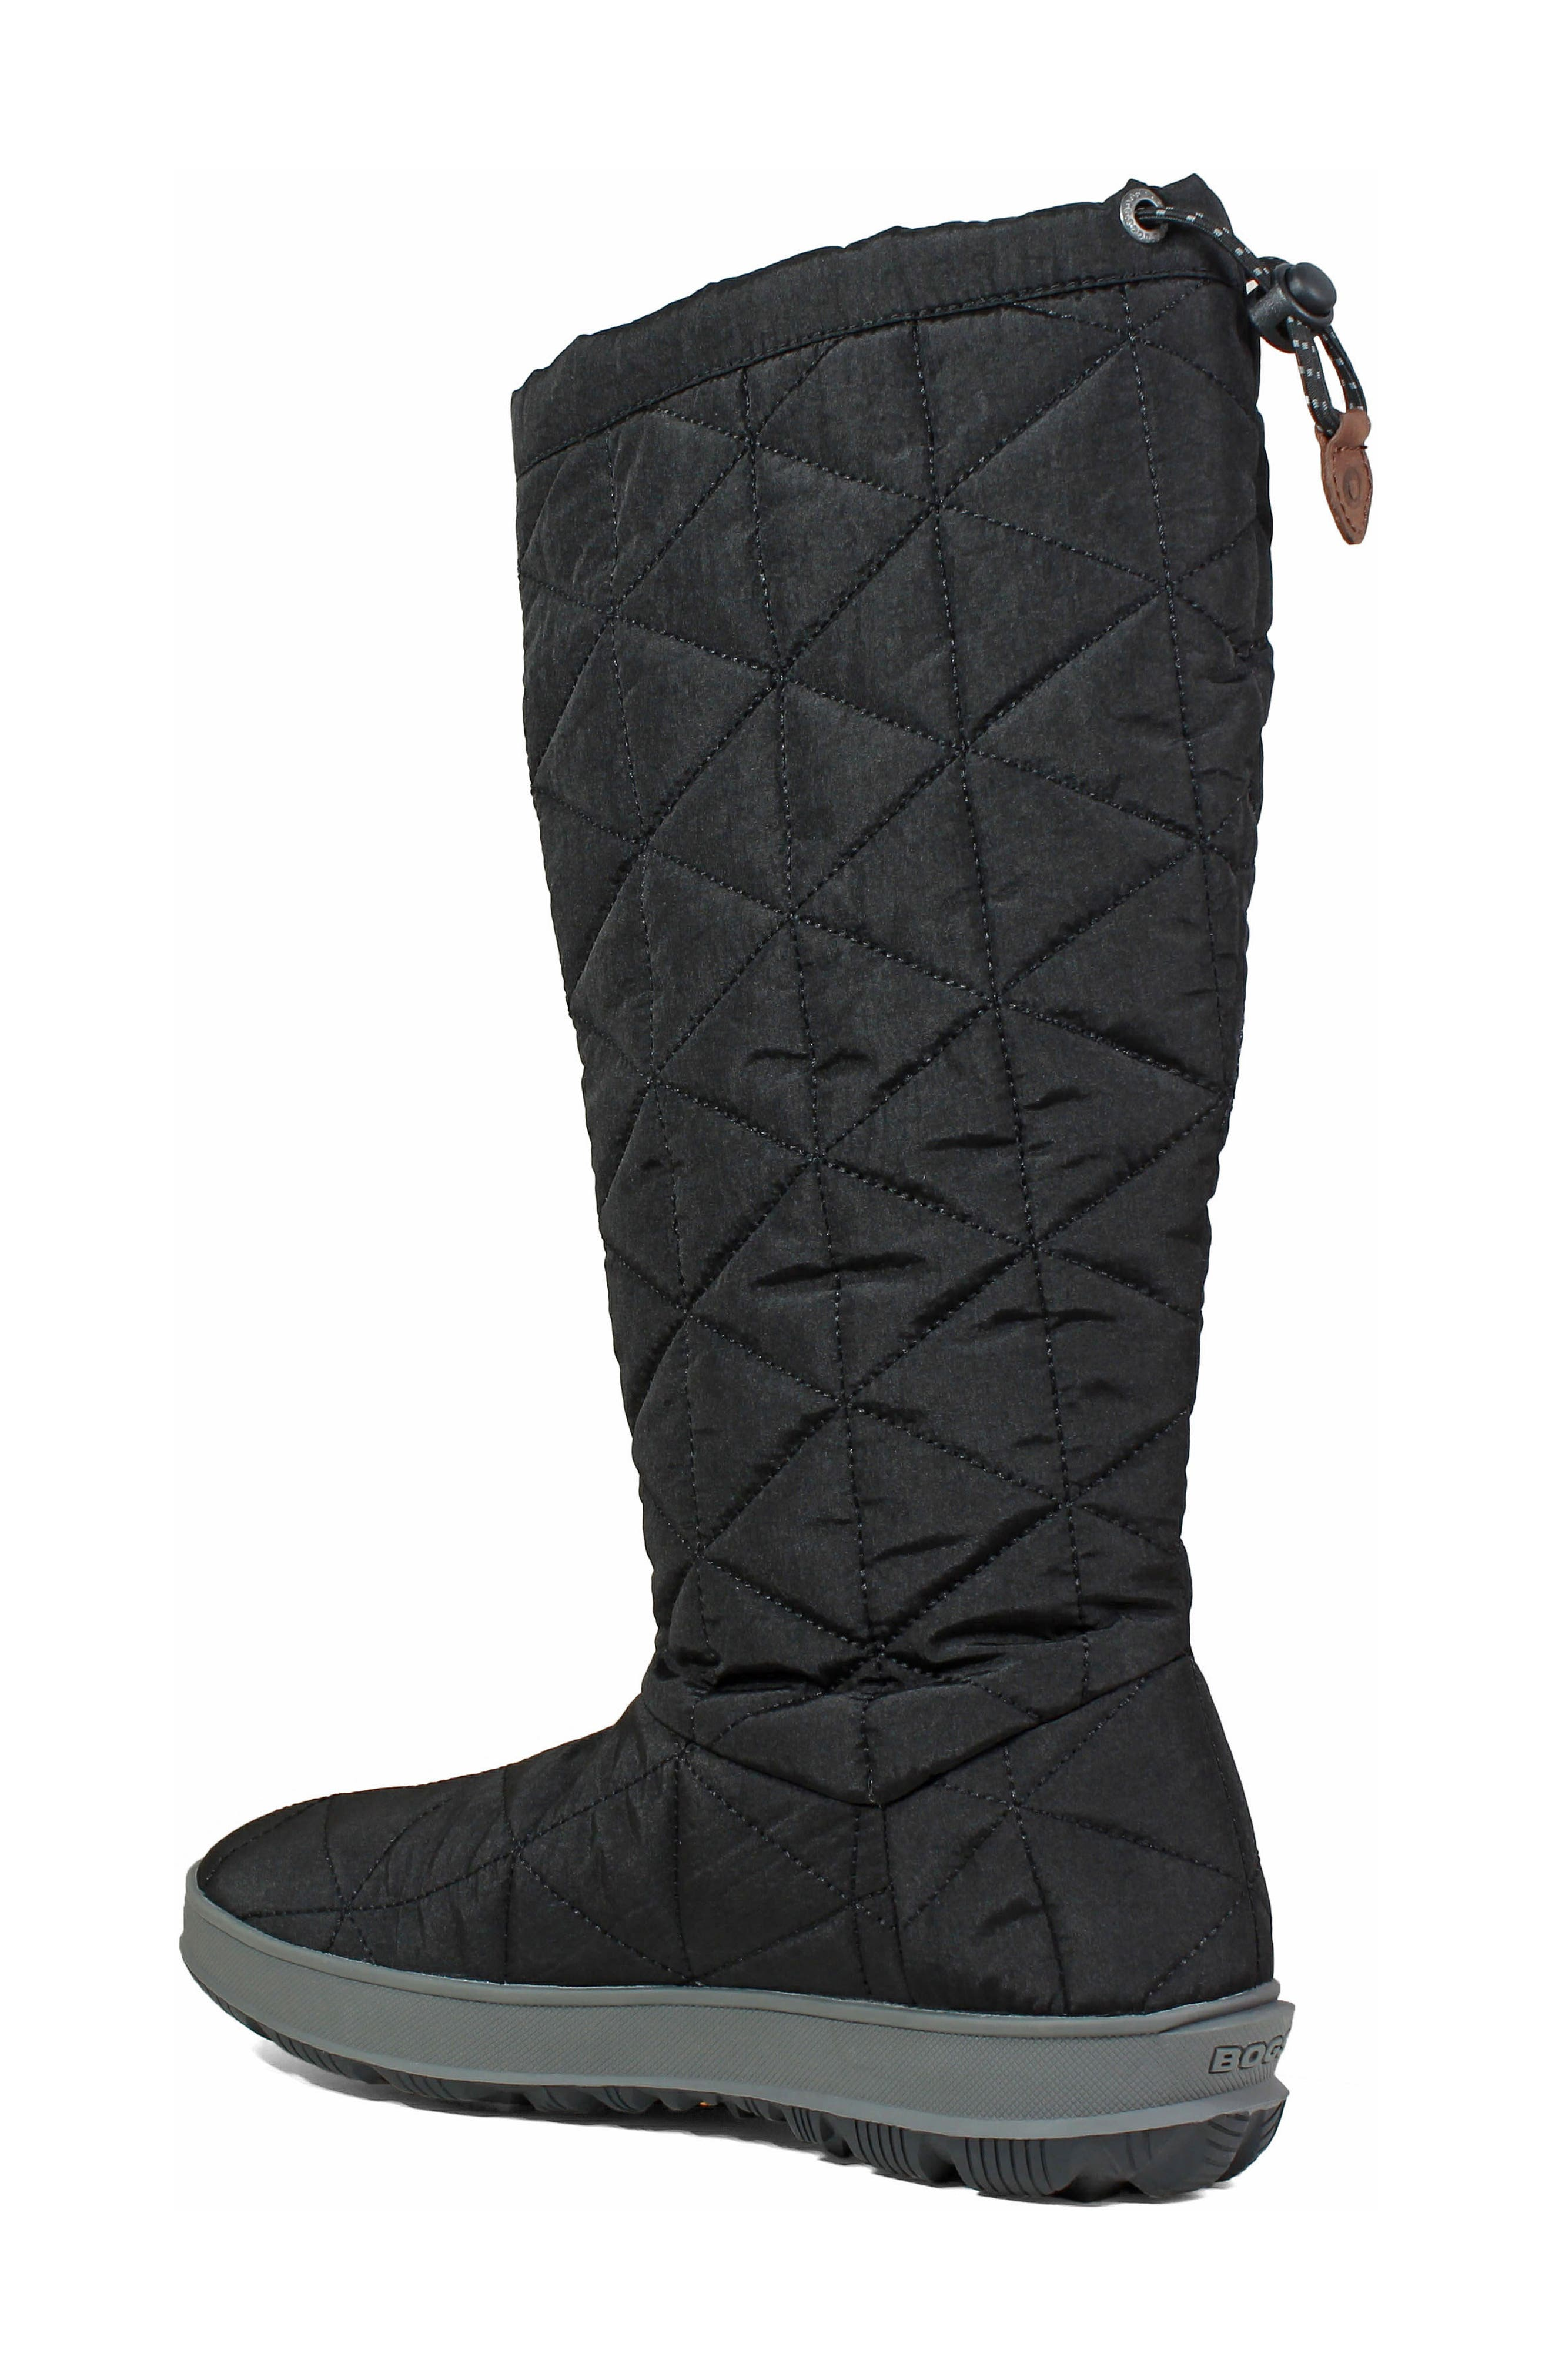 BOGS, Snowday Tall Waterproof Quilted Snow Boot, Alternate thumbnail 2, color, BLACK